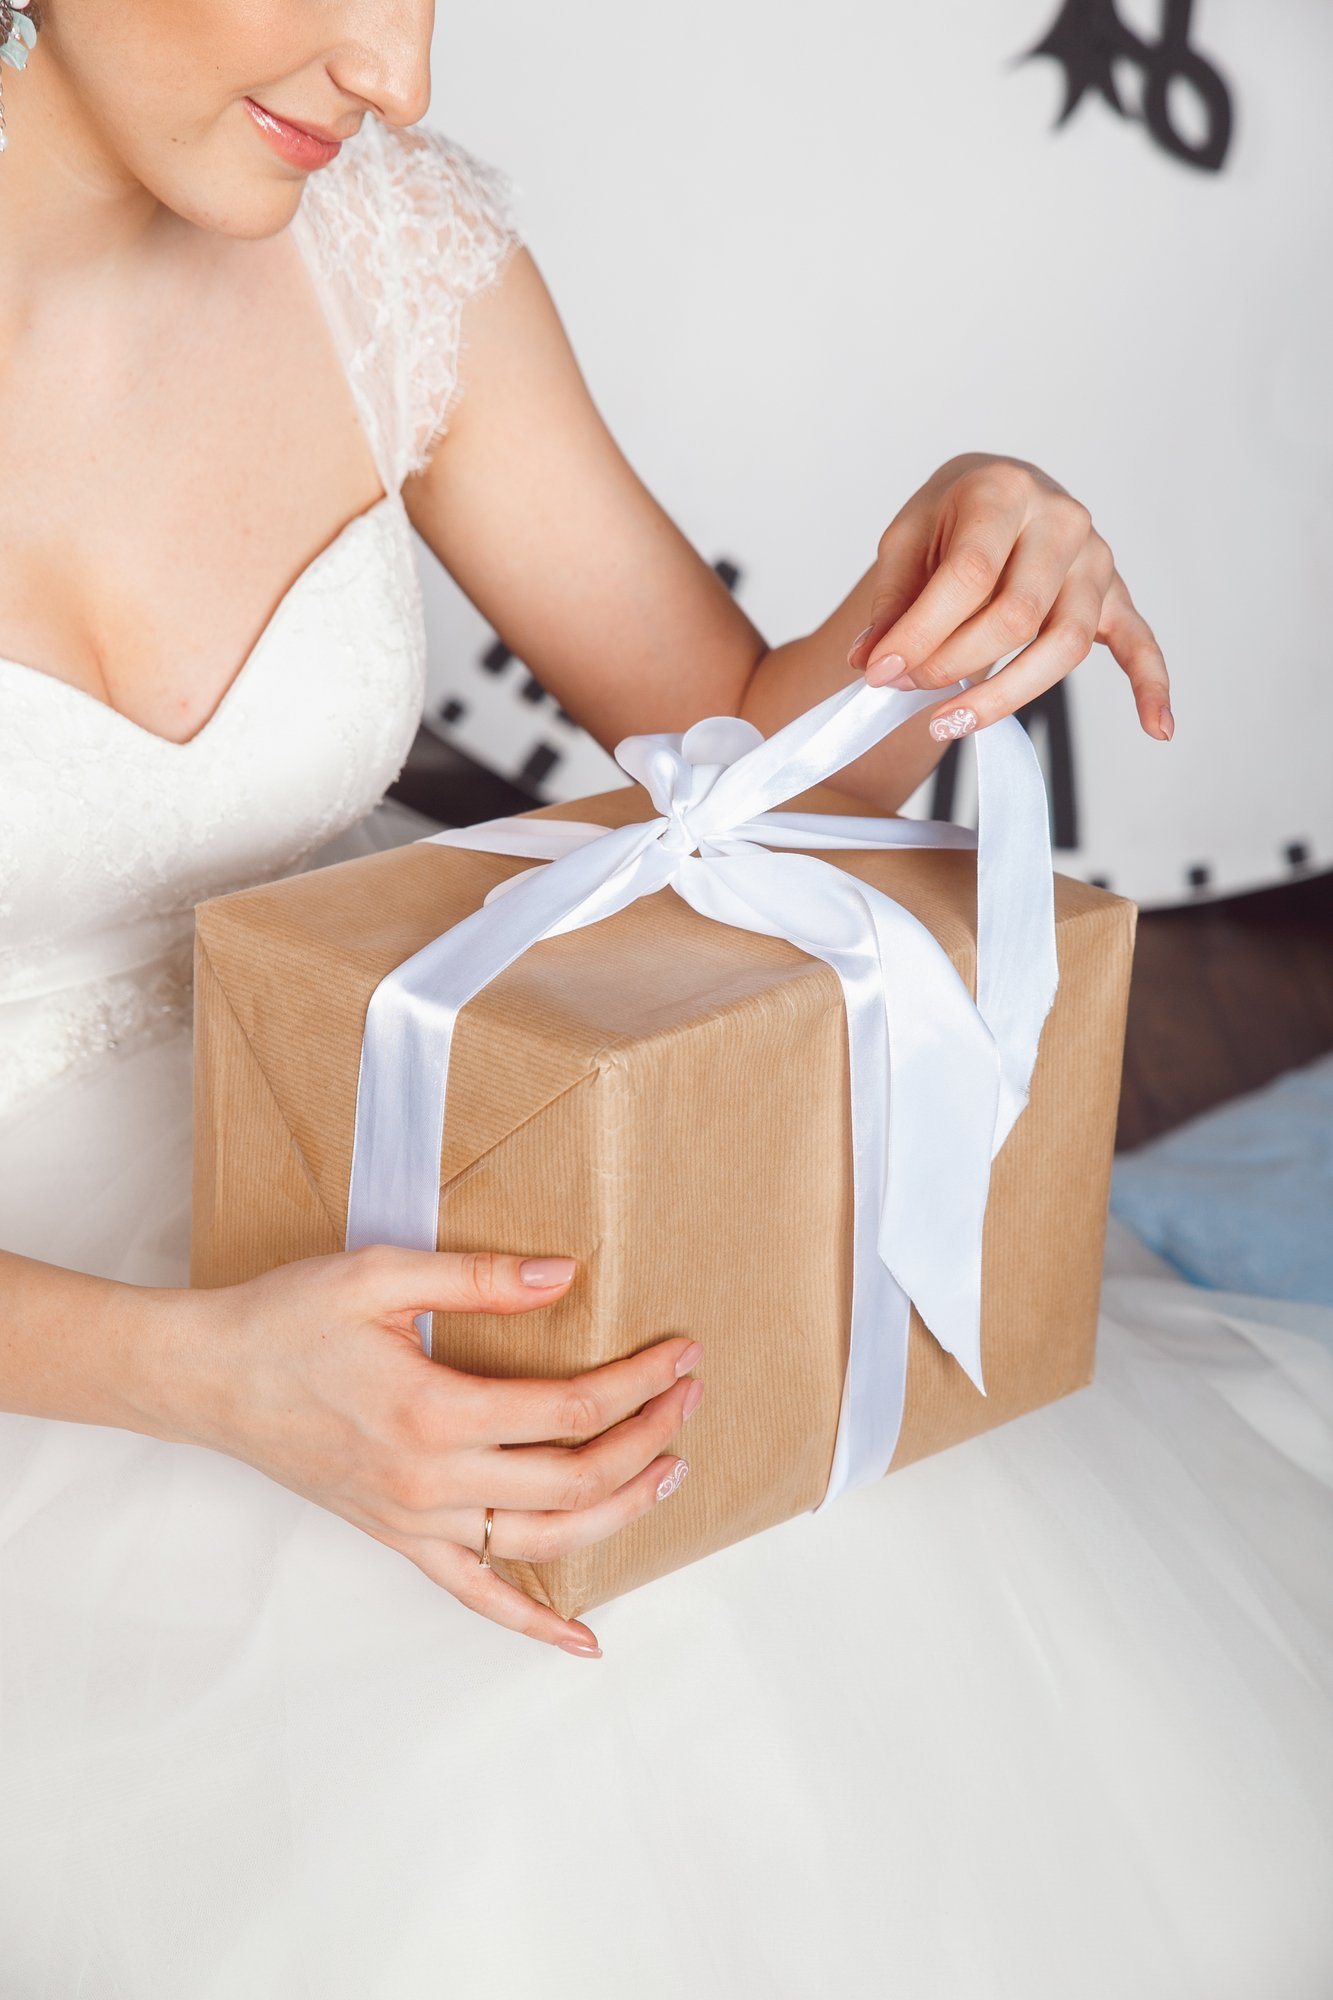 Wedding Gifts Every Bride-to-Be Will Really Appreciate